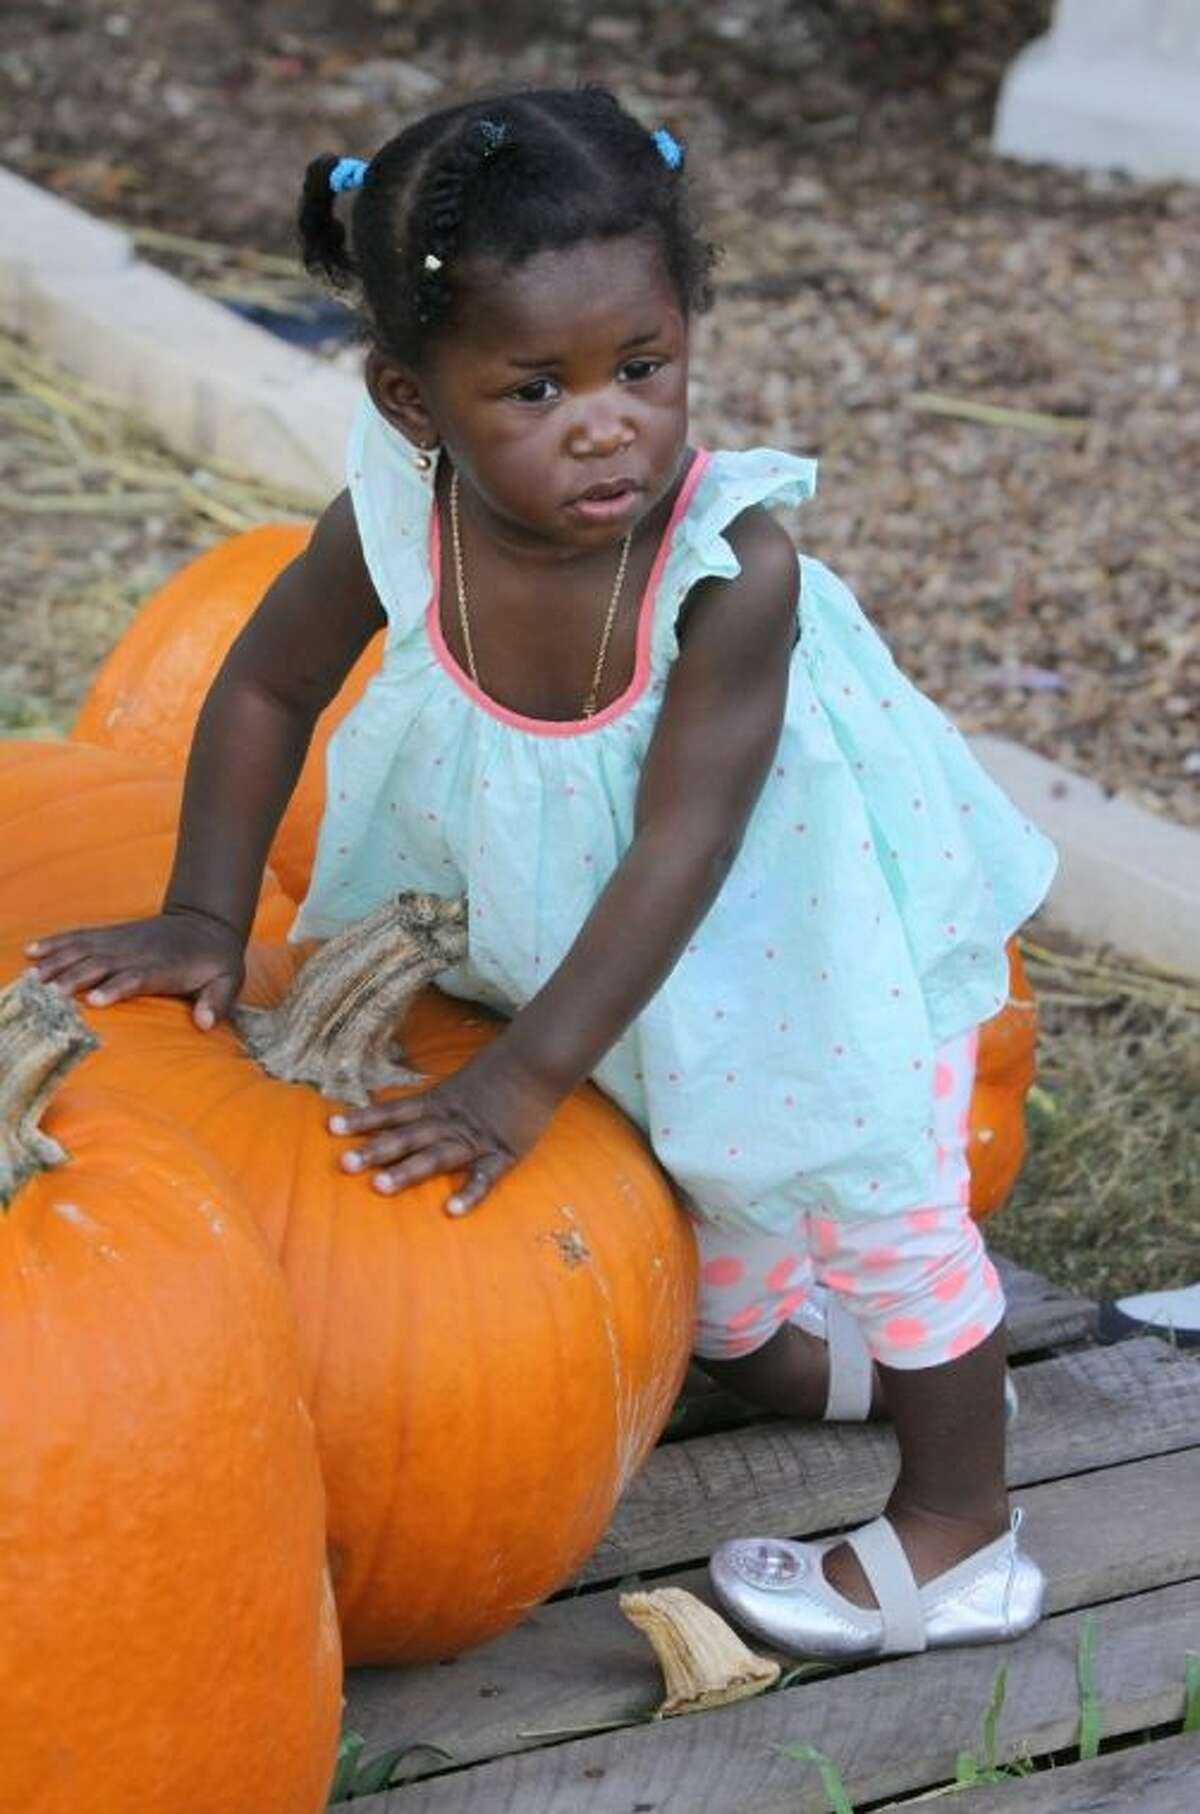 Mya Emasealu, 1, of Sugar Land seems to be picking out a pumpkin at the Pumpkin Patch at Holy Cross Episcopal Church in Sugar Land on Saturday, Oct. 26.